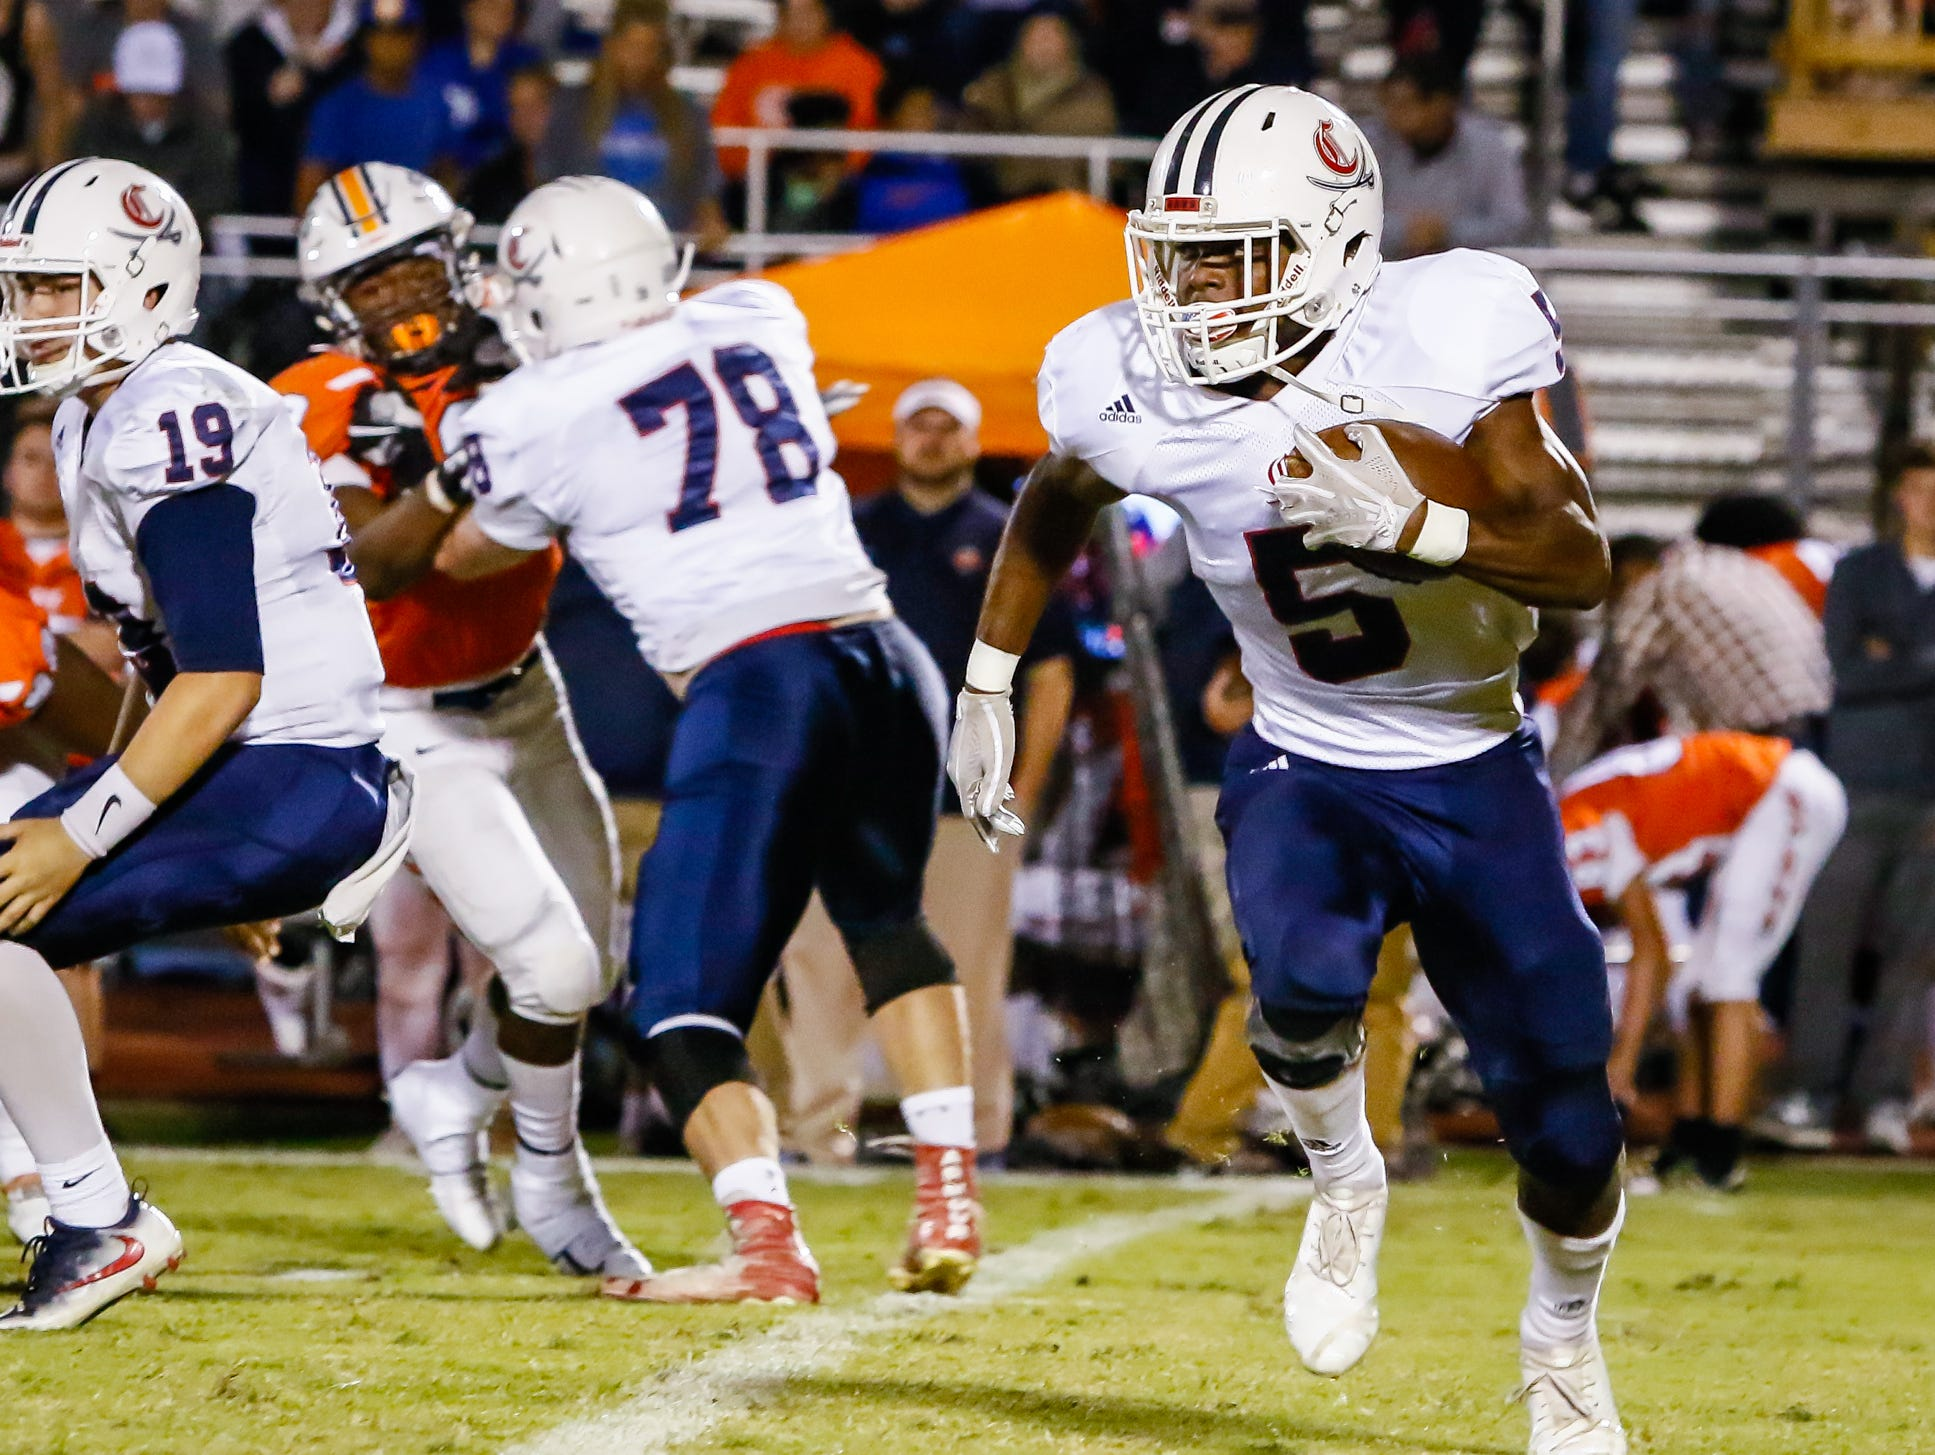 Cookeville running back Jaden McAlister finds running room in Blackman's defense.